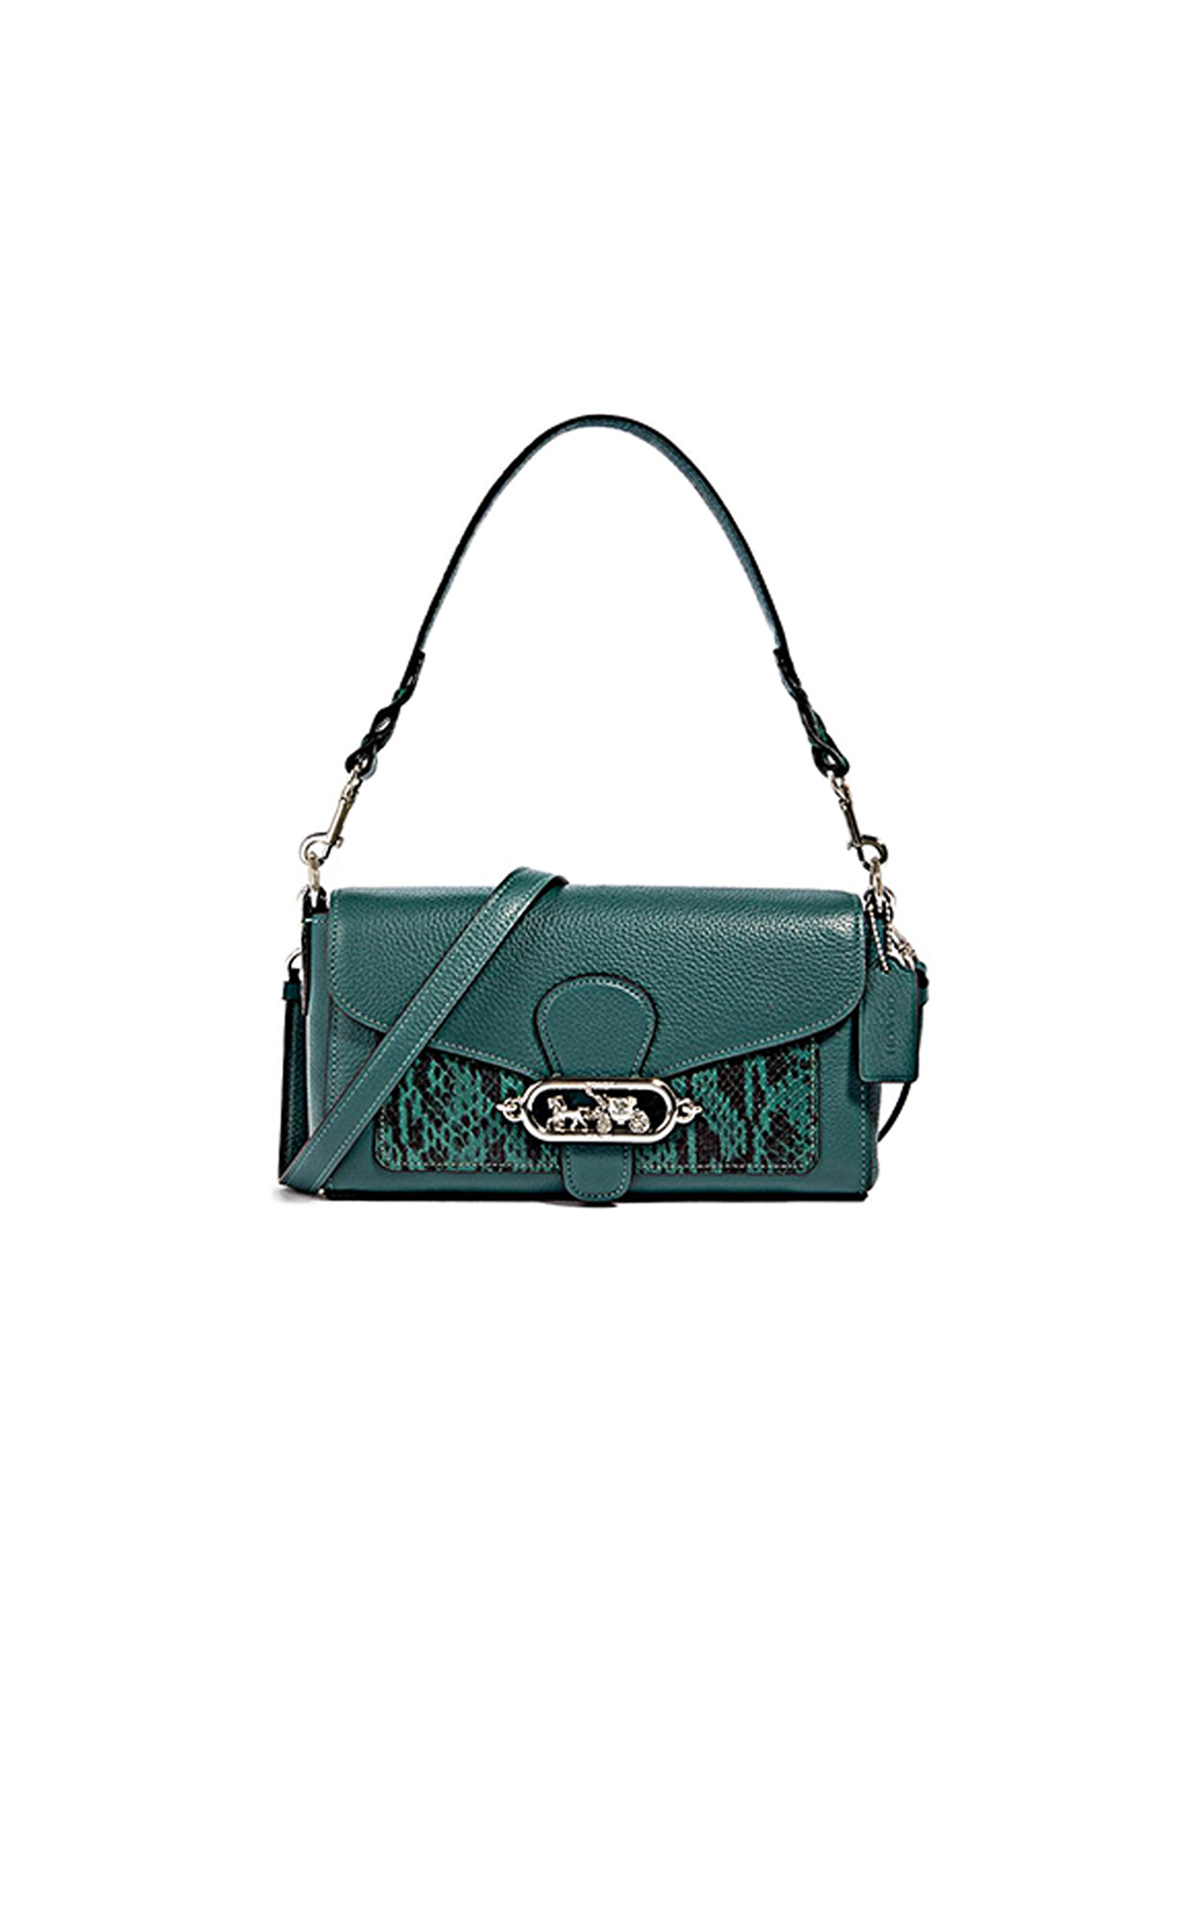 Green Jade small bag Jennifer López Coach